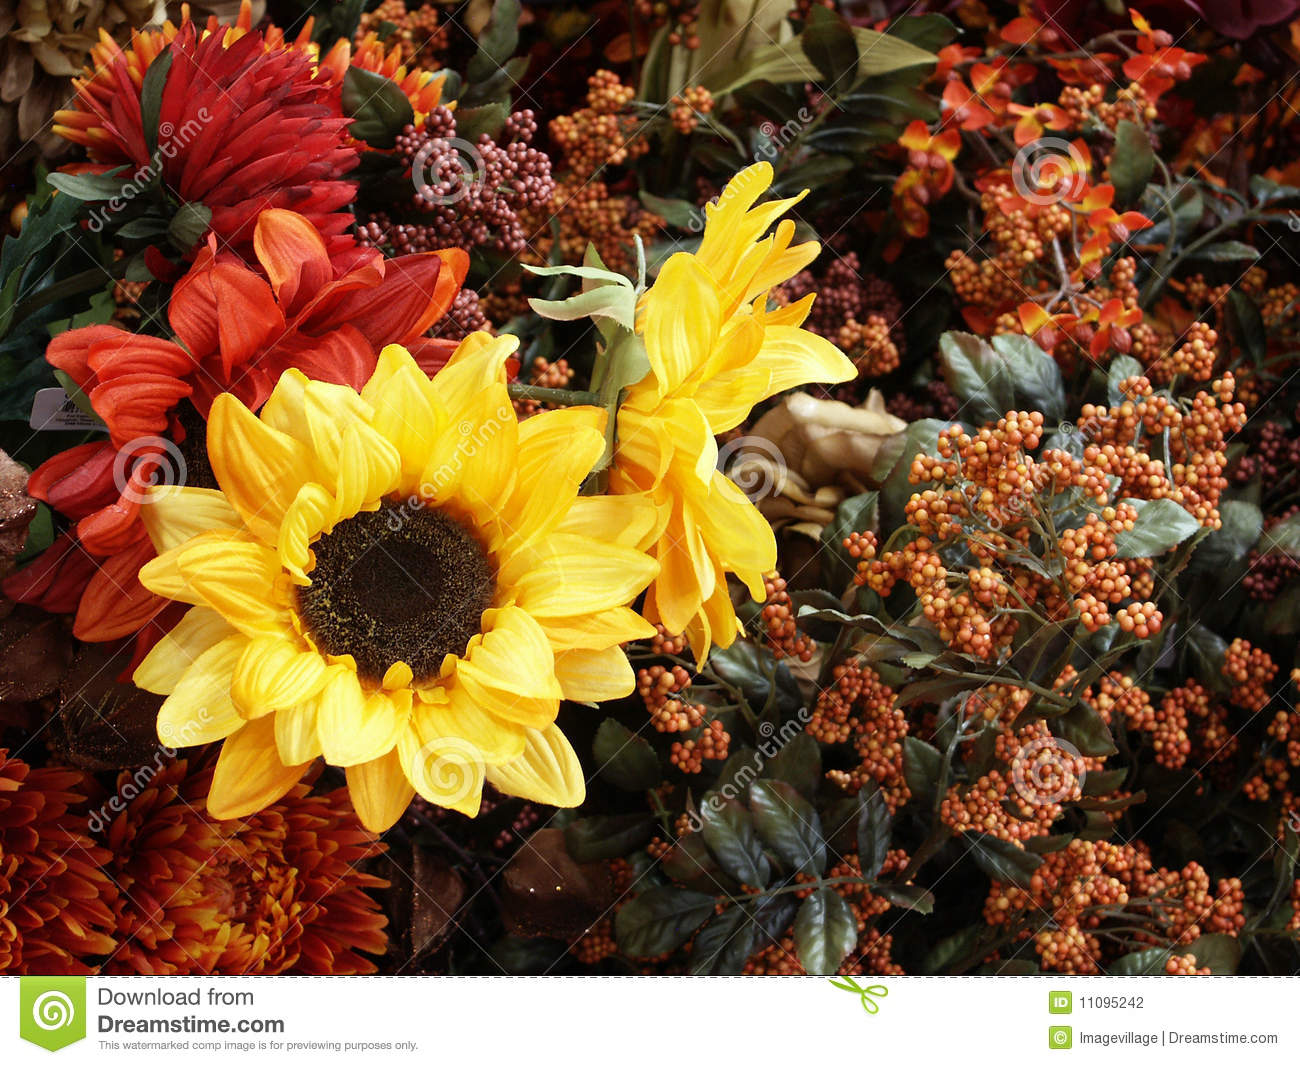 Sunflowers and other fall flowers stock photography image 11095242 background fall dhlflorist Images